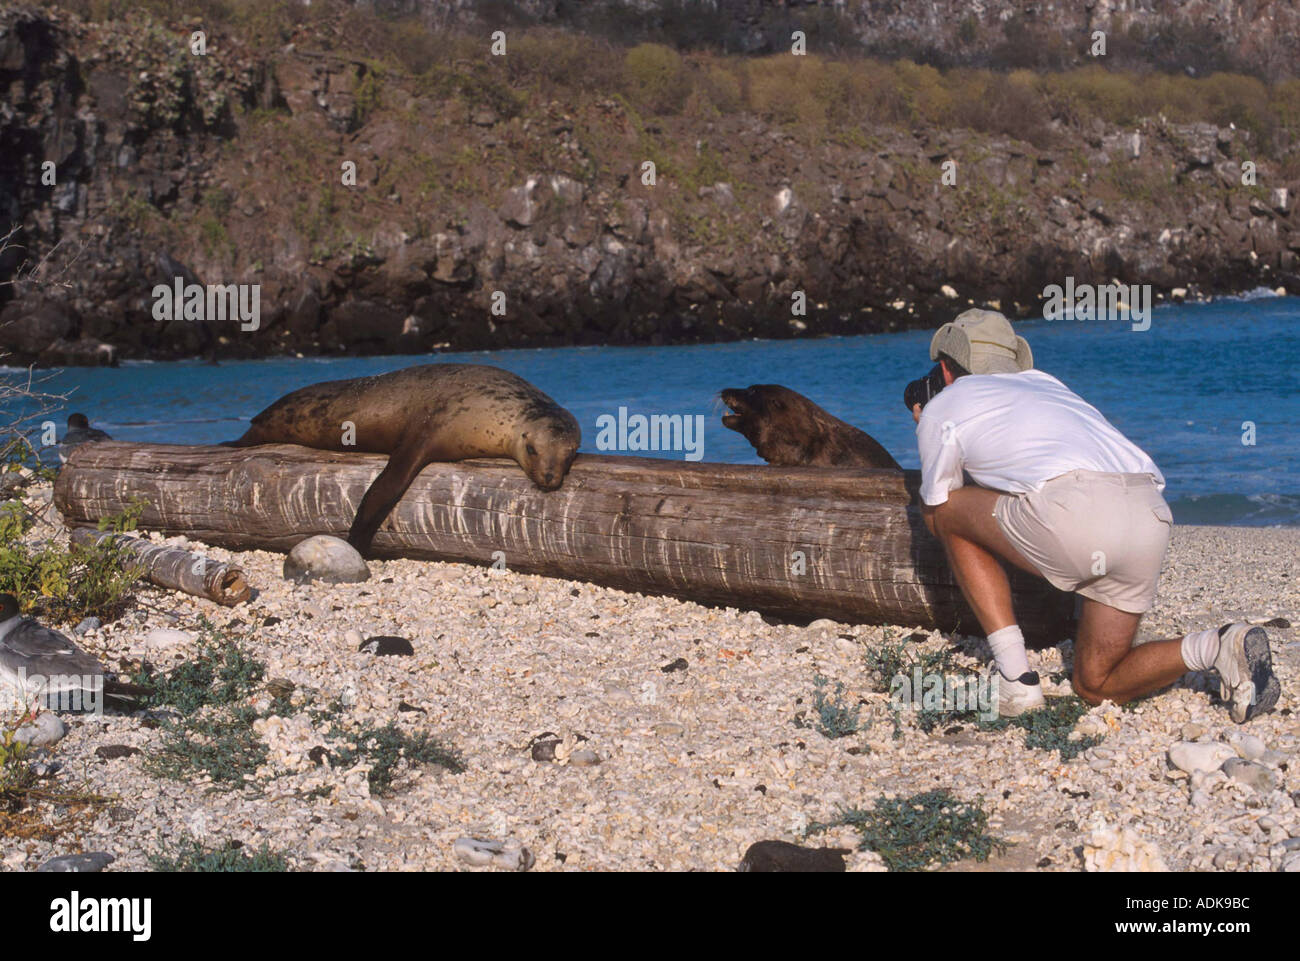 Sports Pastimes Photography Photographing Galapagos Sea Lion - Stock Image